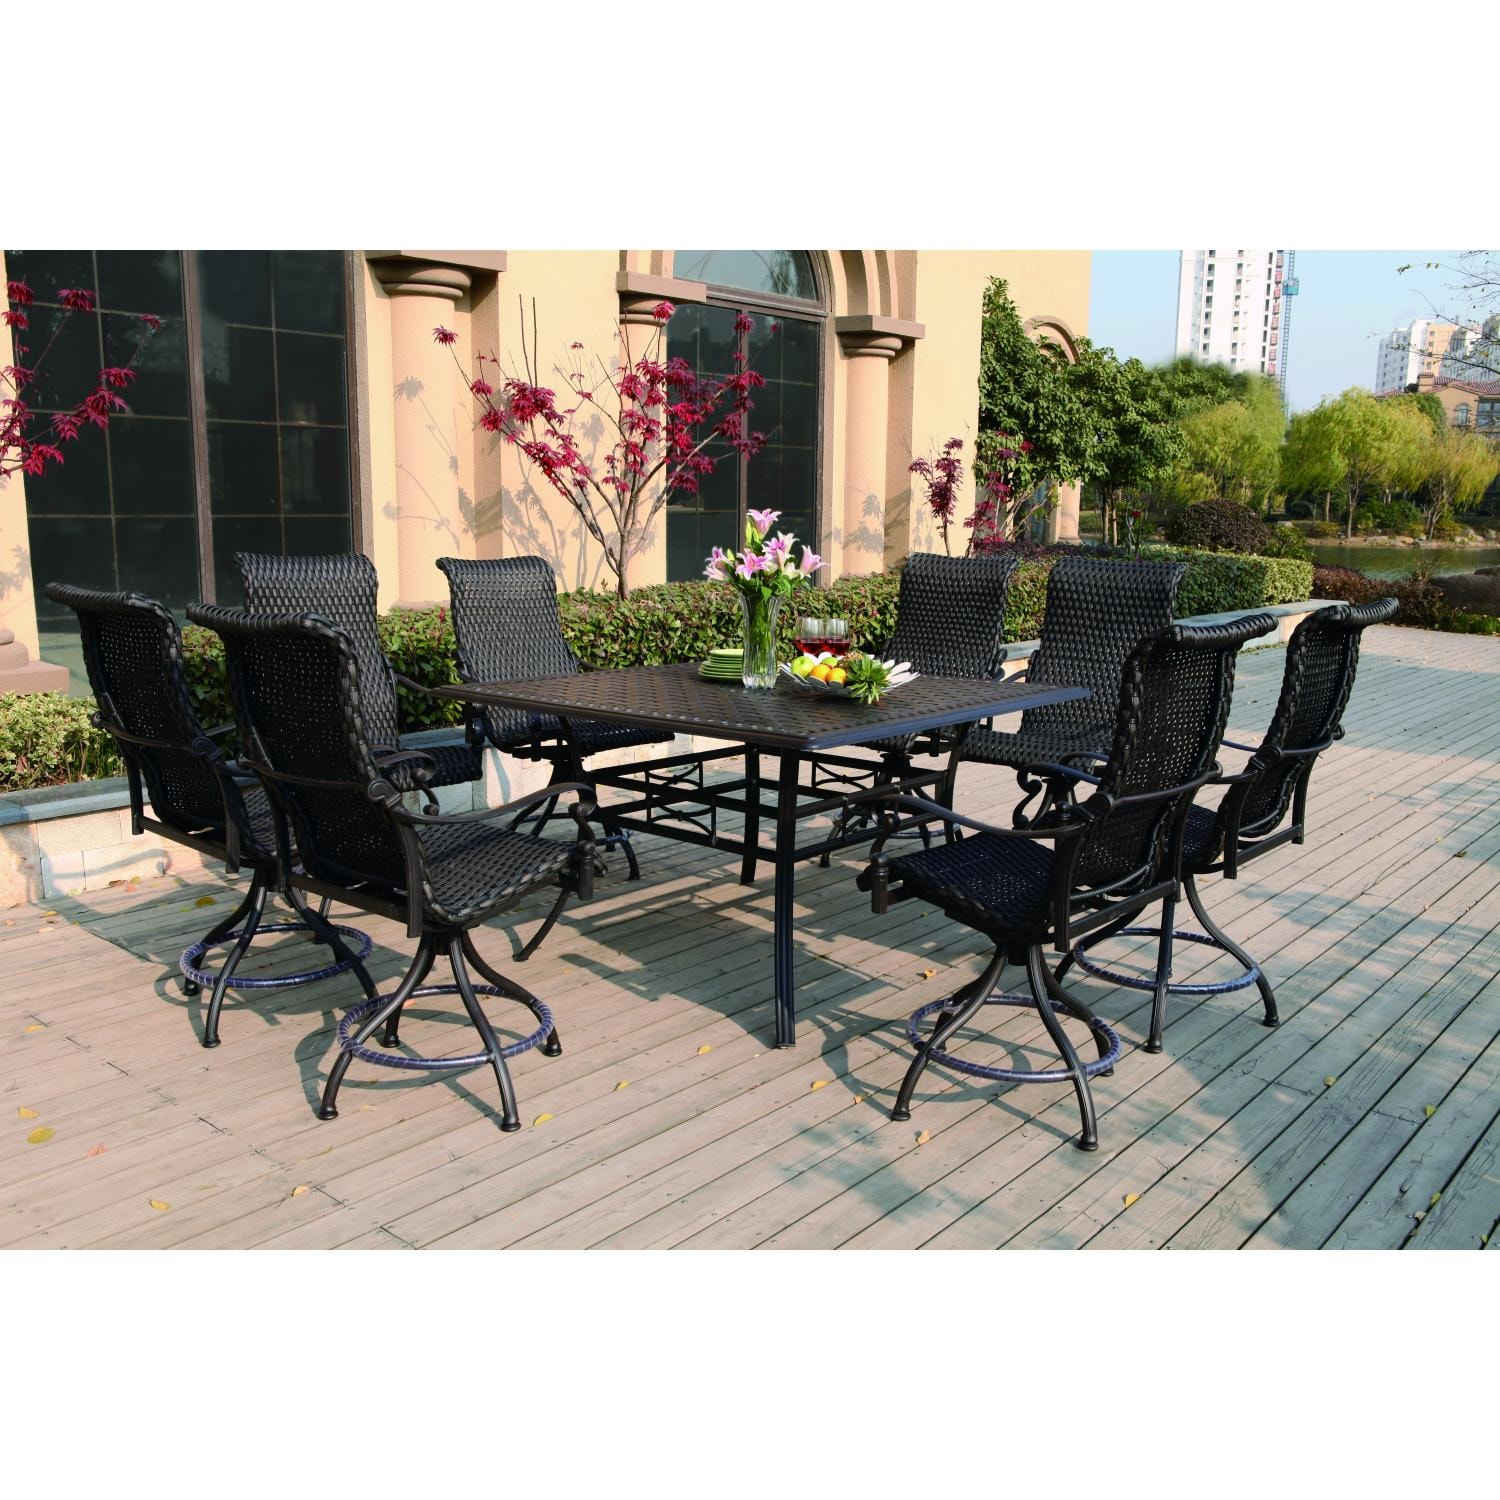 Darlee victoria 9 piece resin wicker counter height patio dining set with swivel chairs bbq guys